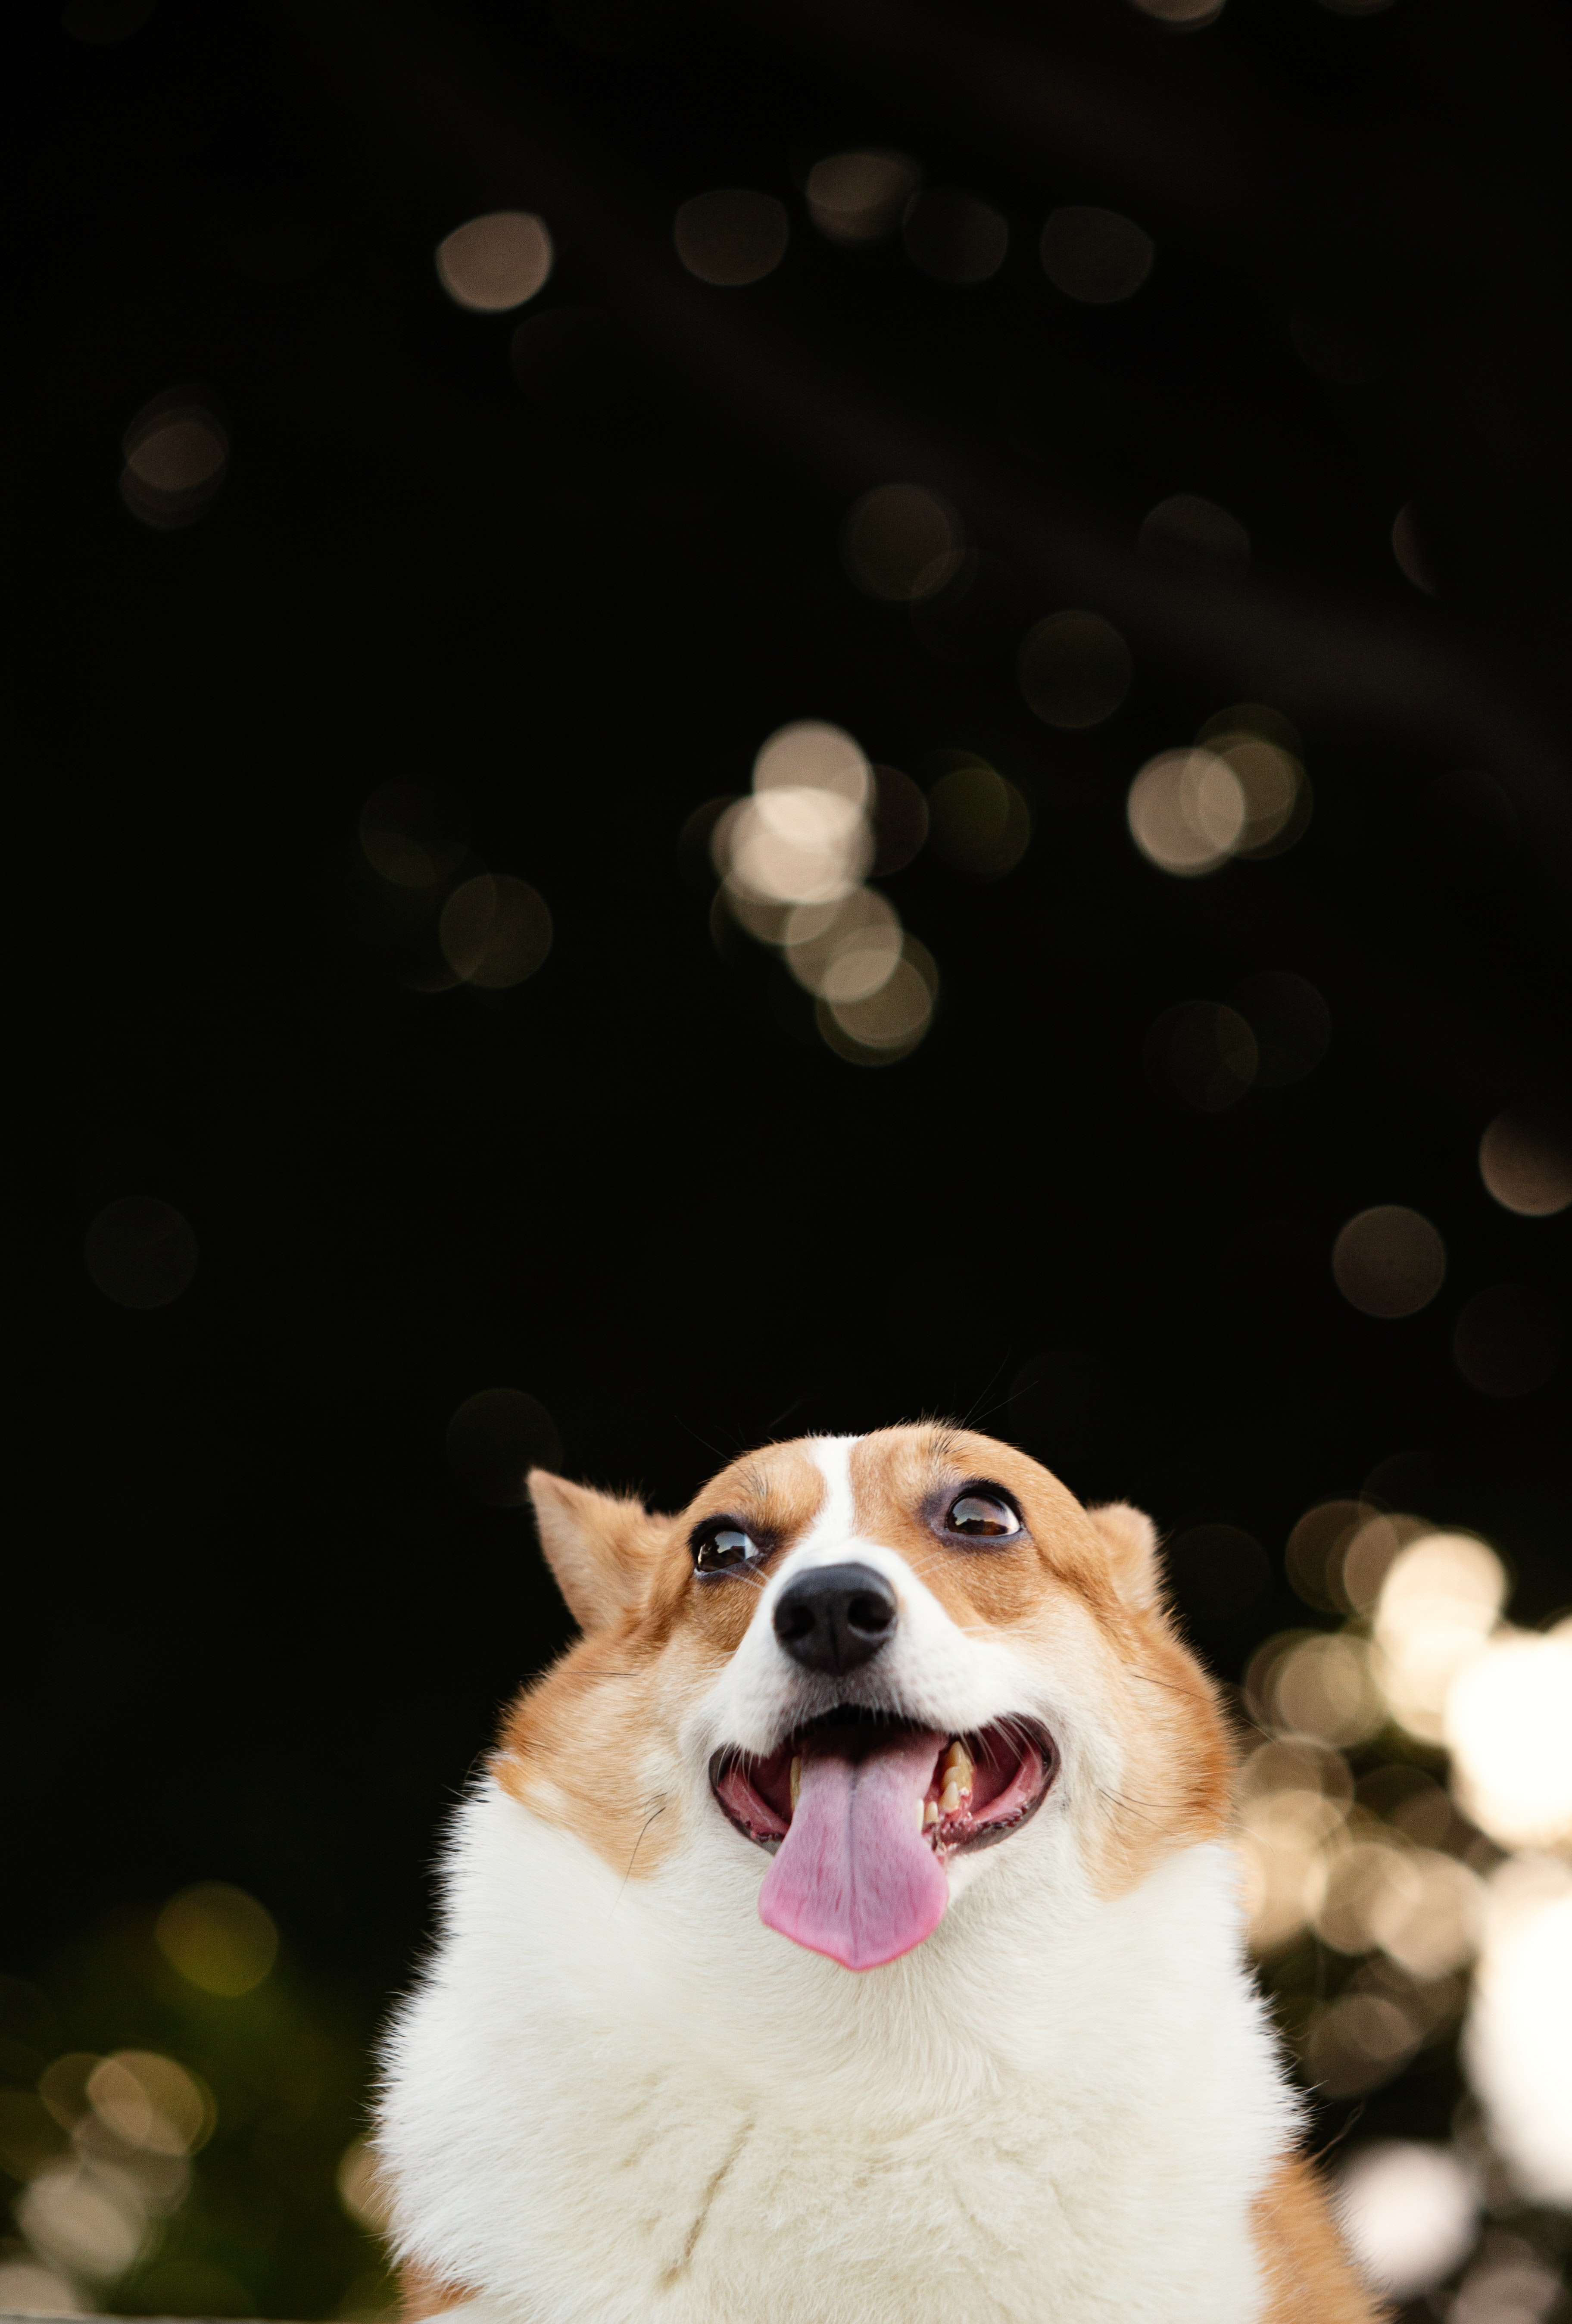 120179 Screensavers and Wallpapers Protruding Tongue for phone. Download Animals, Corgi, Dog, Funny, Protruding Tongue, Tongue Stuck Out, Pet pictures for free